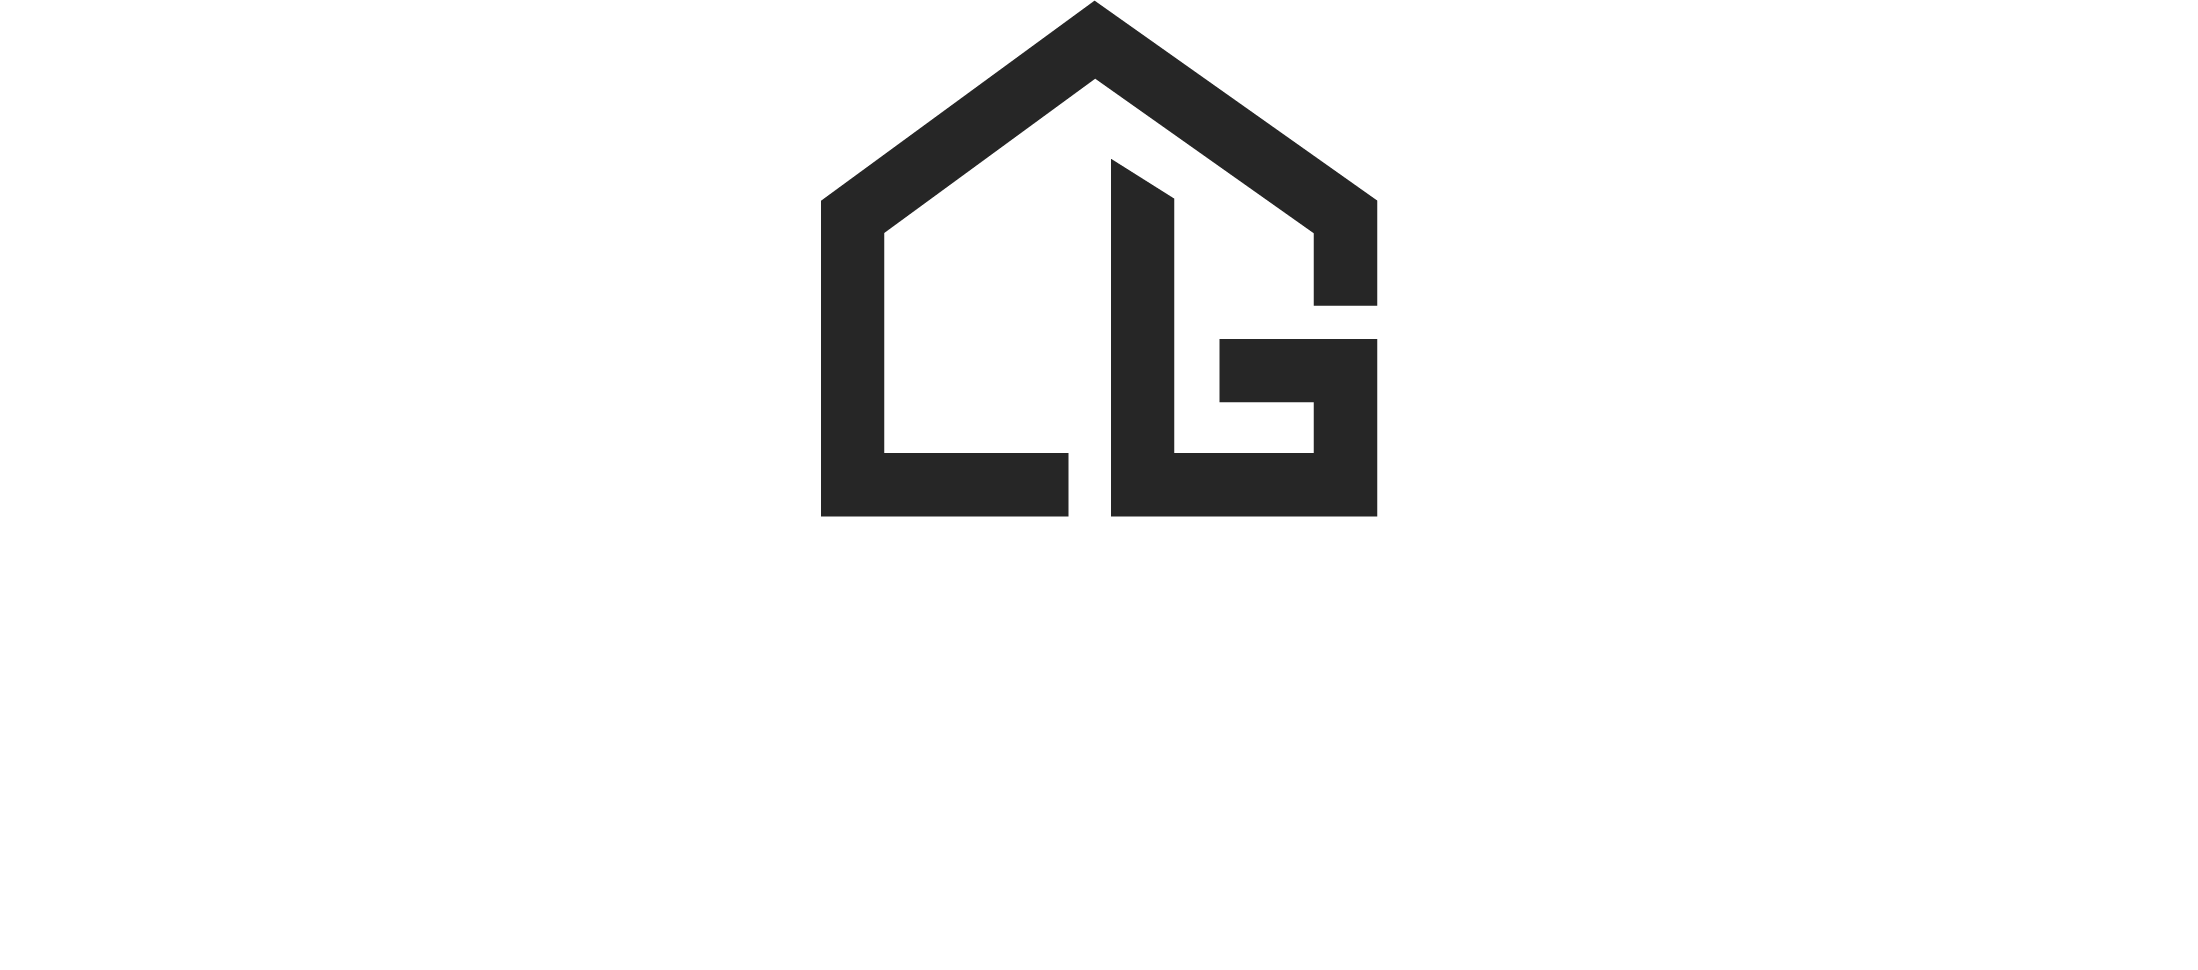 Forward thinking real estate group located in the midwest.